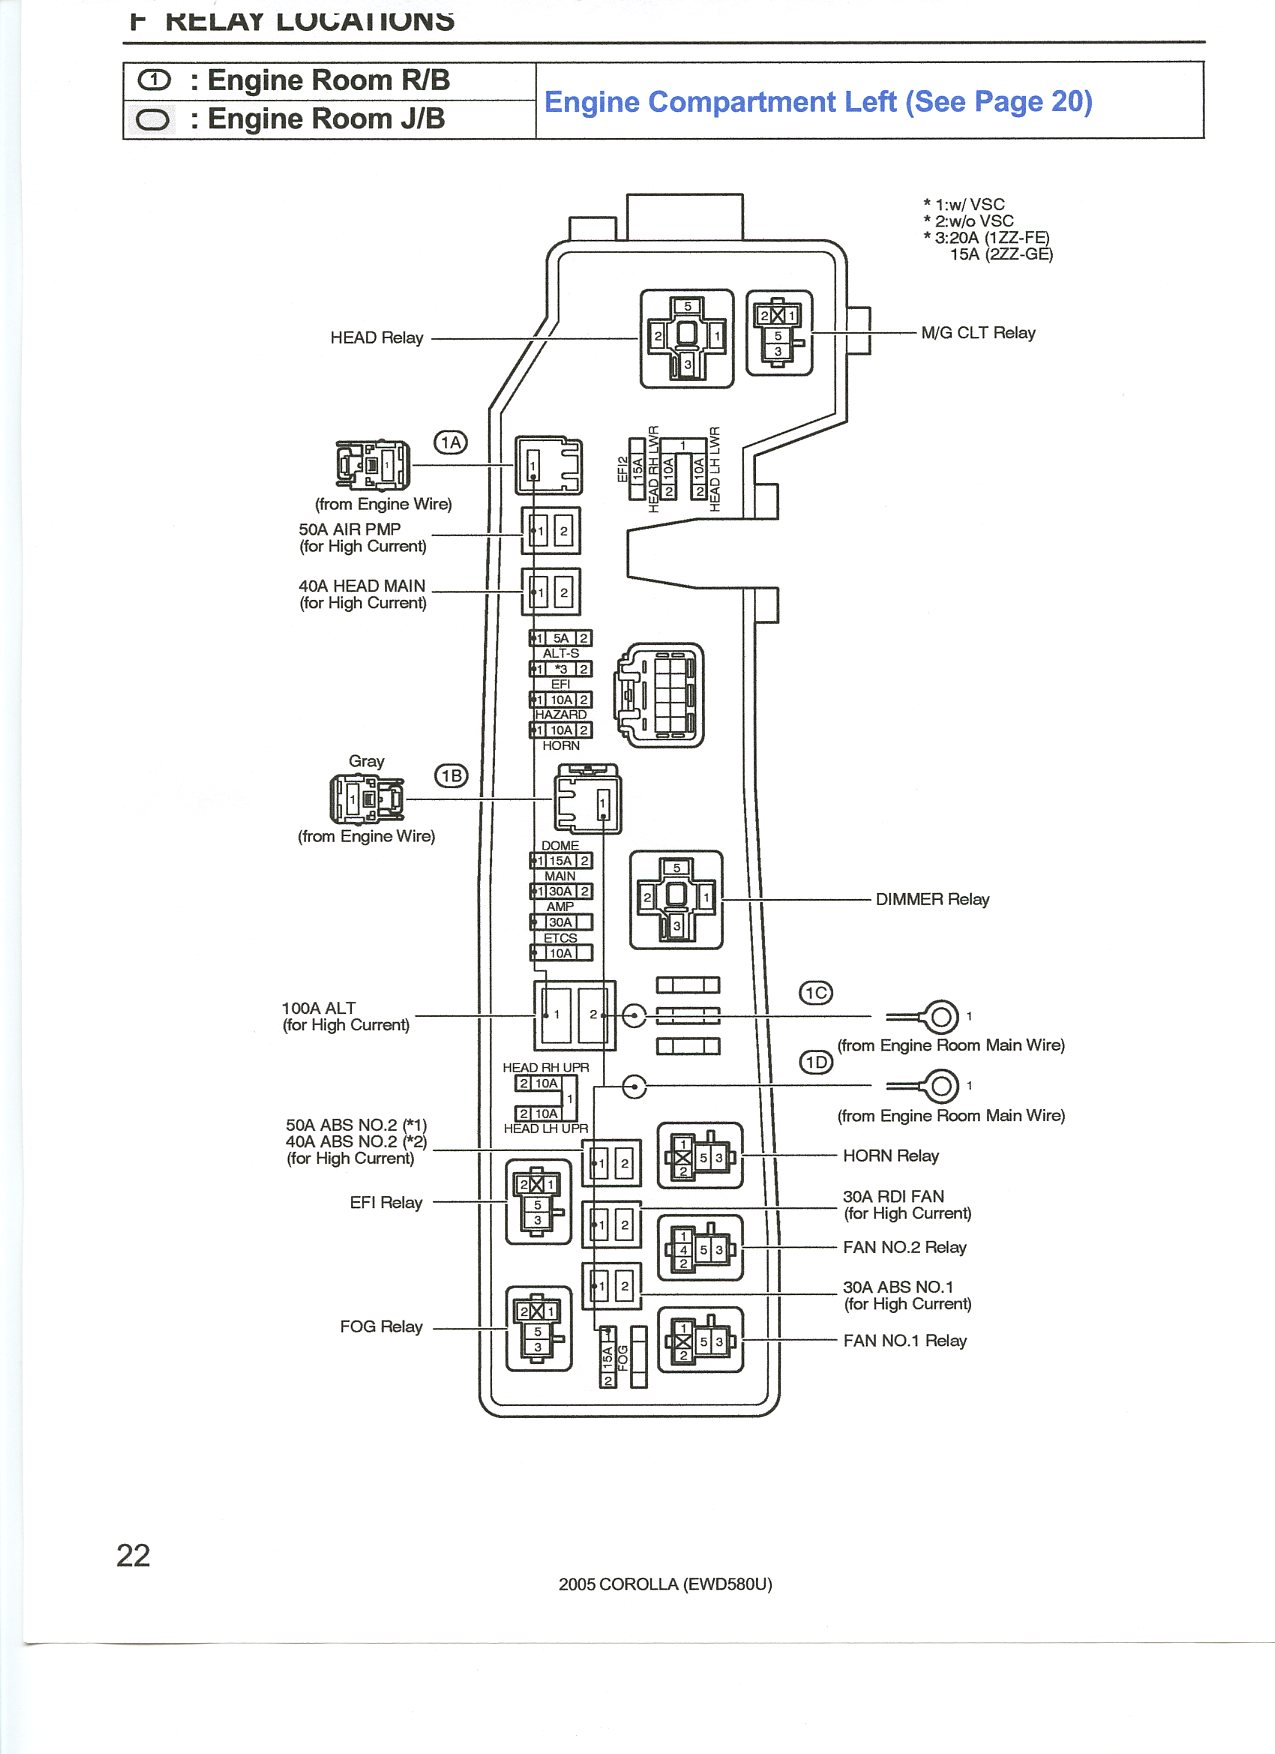 Toyota Corolla 1994 Wiring Diagram Wiring Diagram And